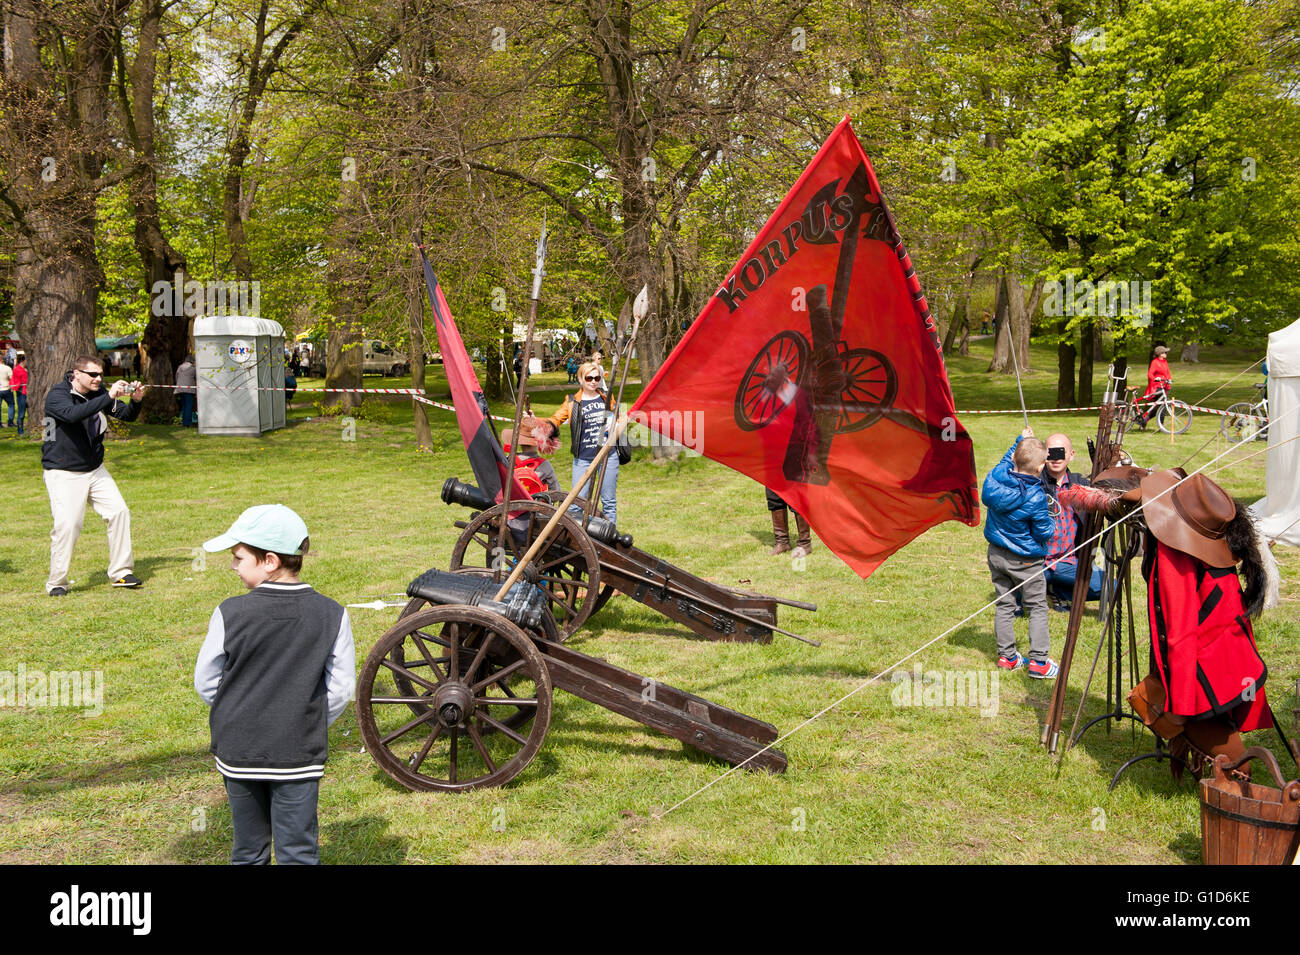 Small cannons at Swedes invasion reenactment picnic in Janowiec Castle, guns with red flags at Swedish assault improvisation. - Stock Image